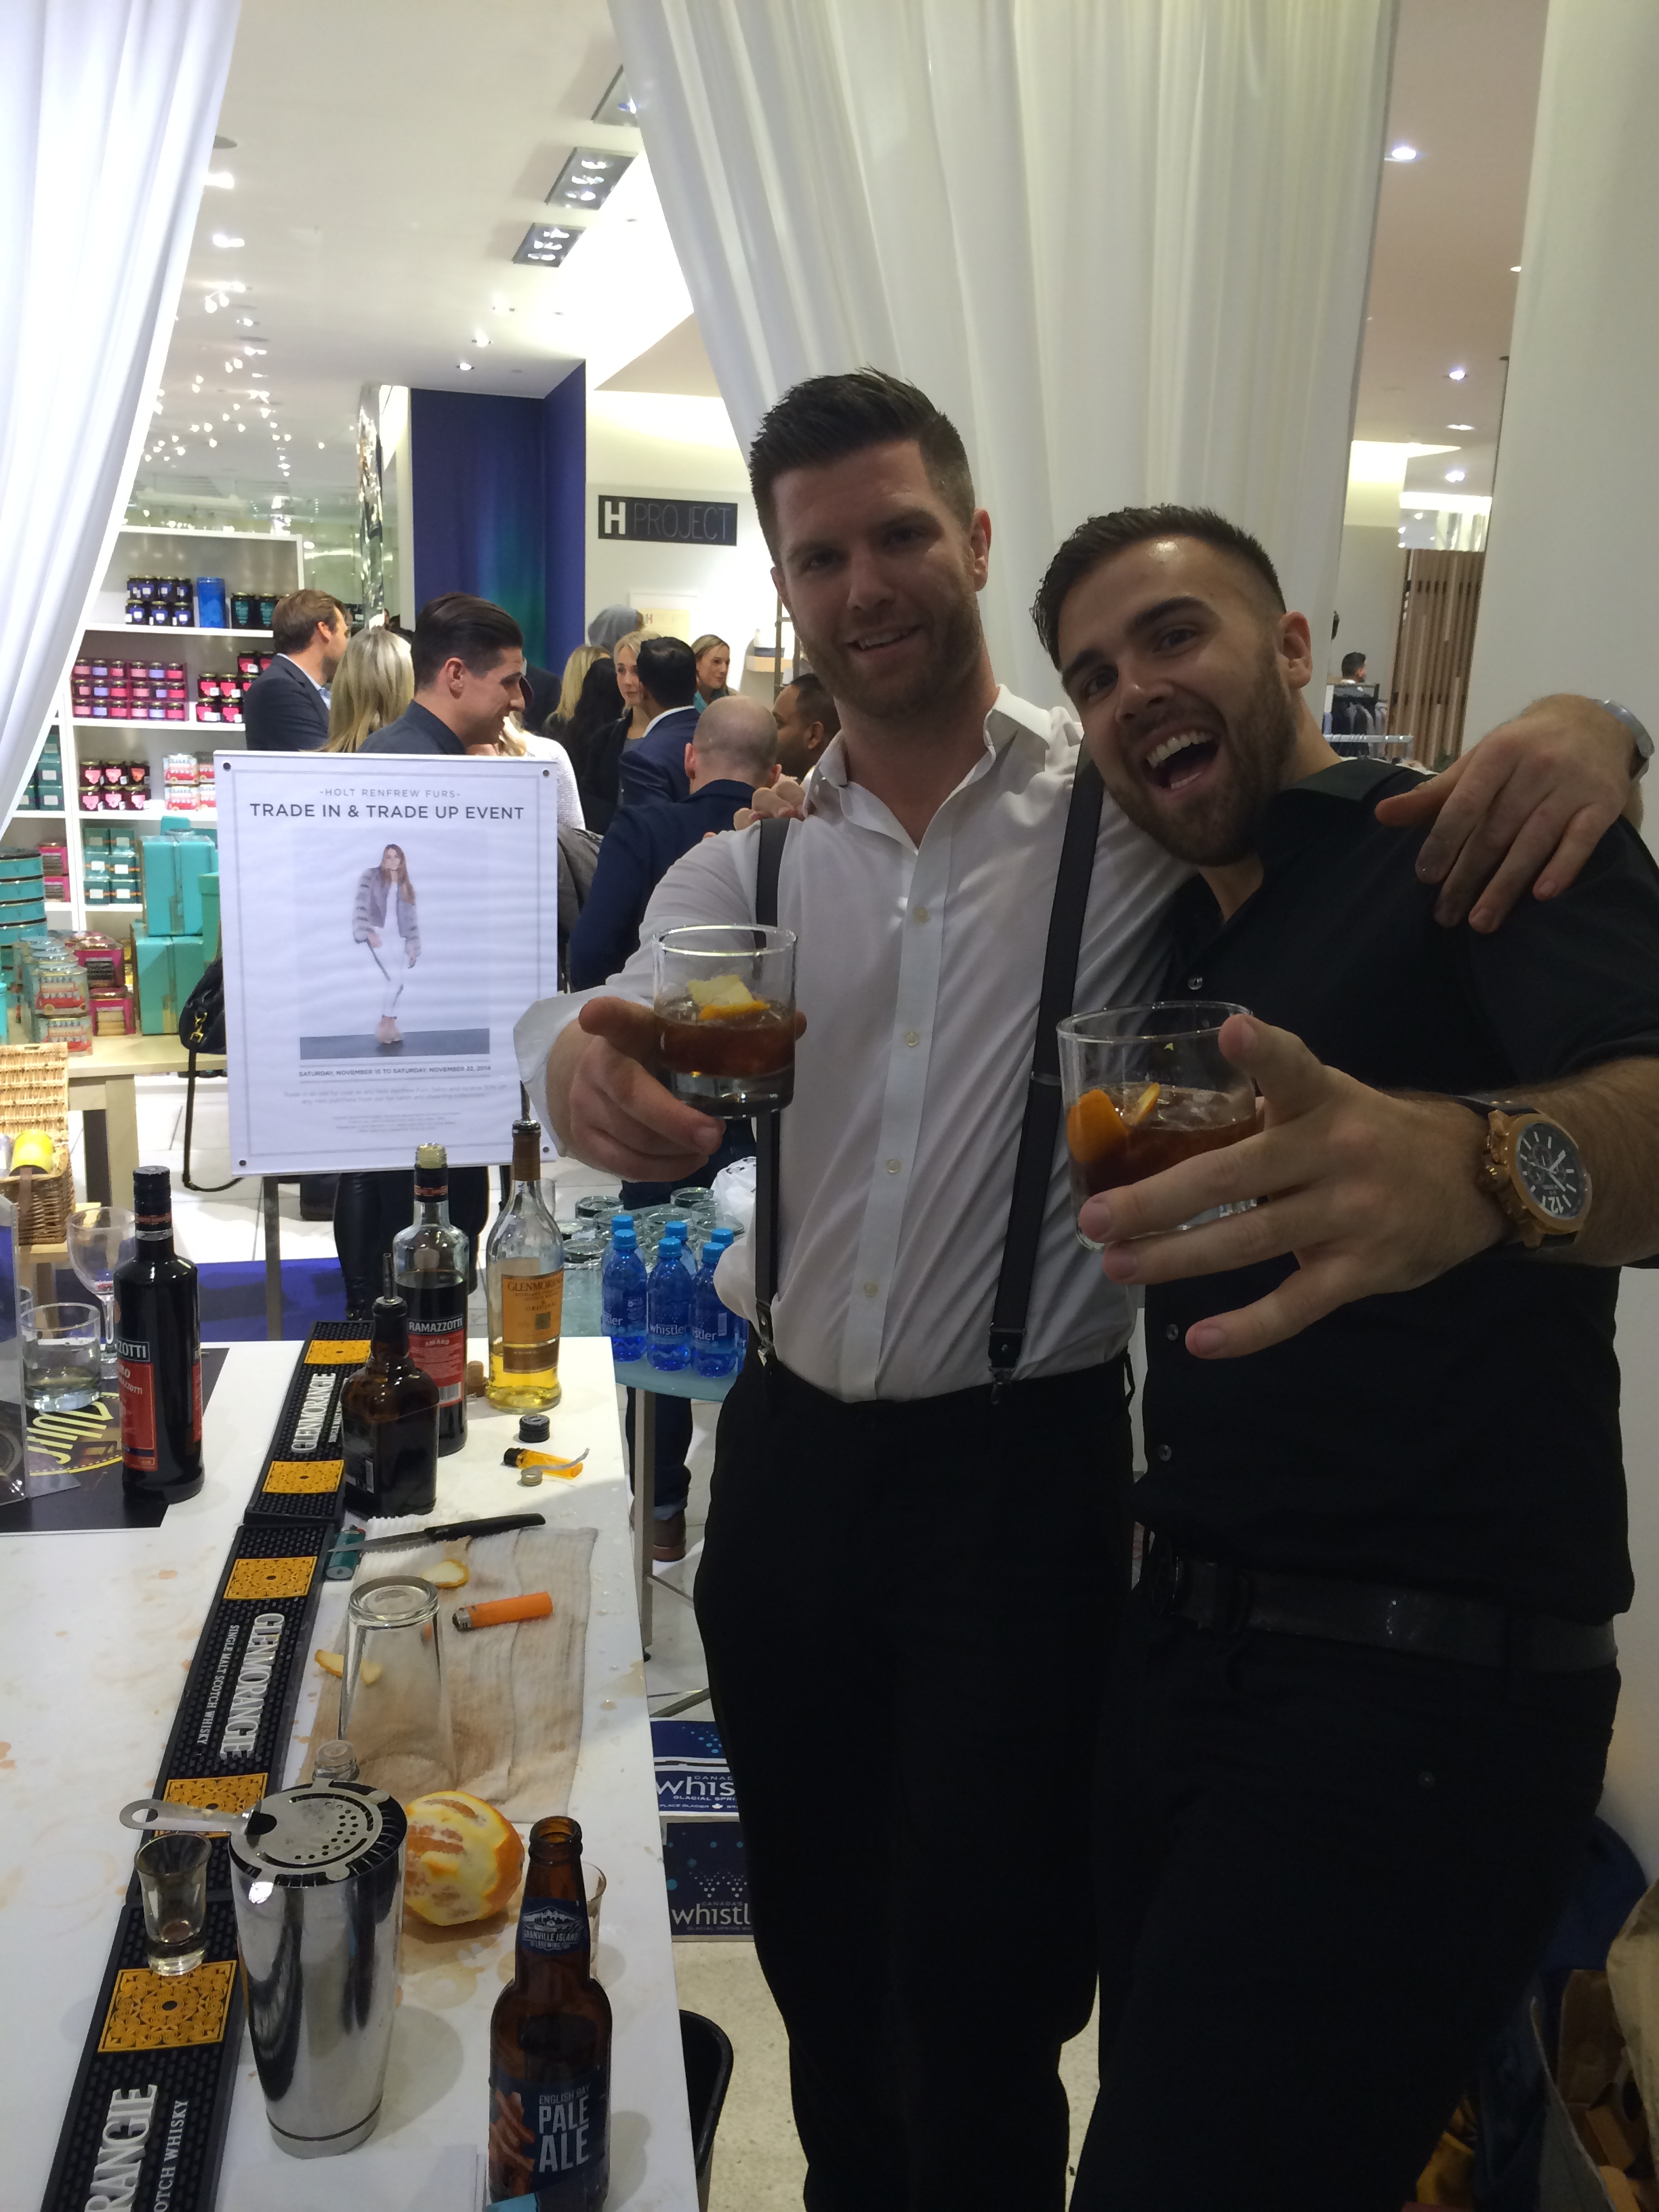 Jeff McKinnon & Nick Harborne celebrating a job well done after the party with a Wiseman